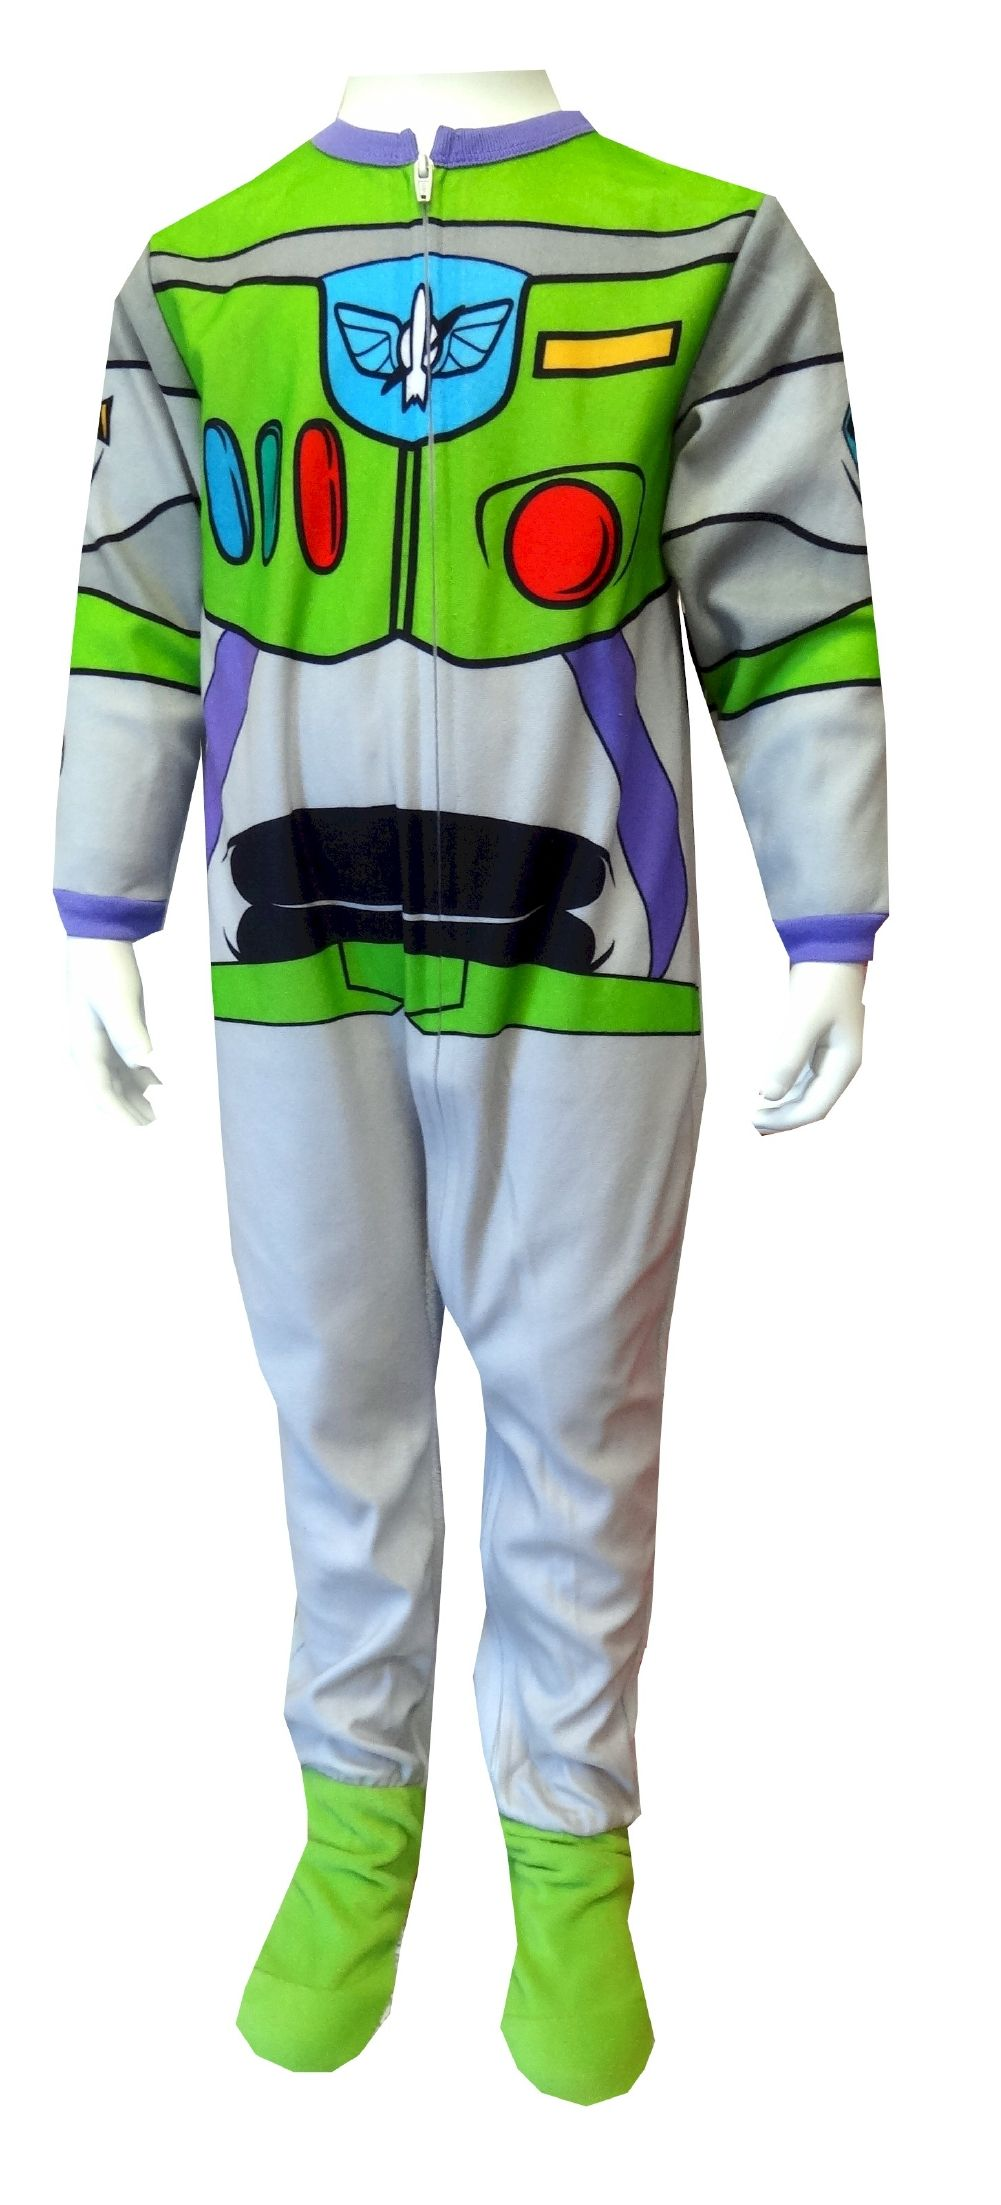 Disney Baby Boys Toy Story Footies Buzz Lightyear